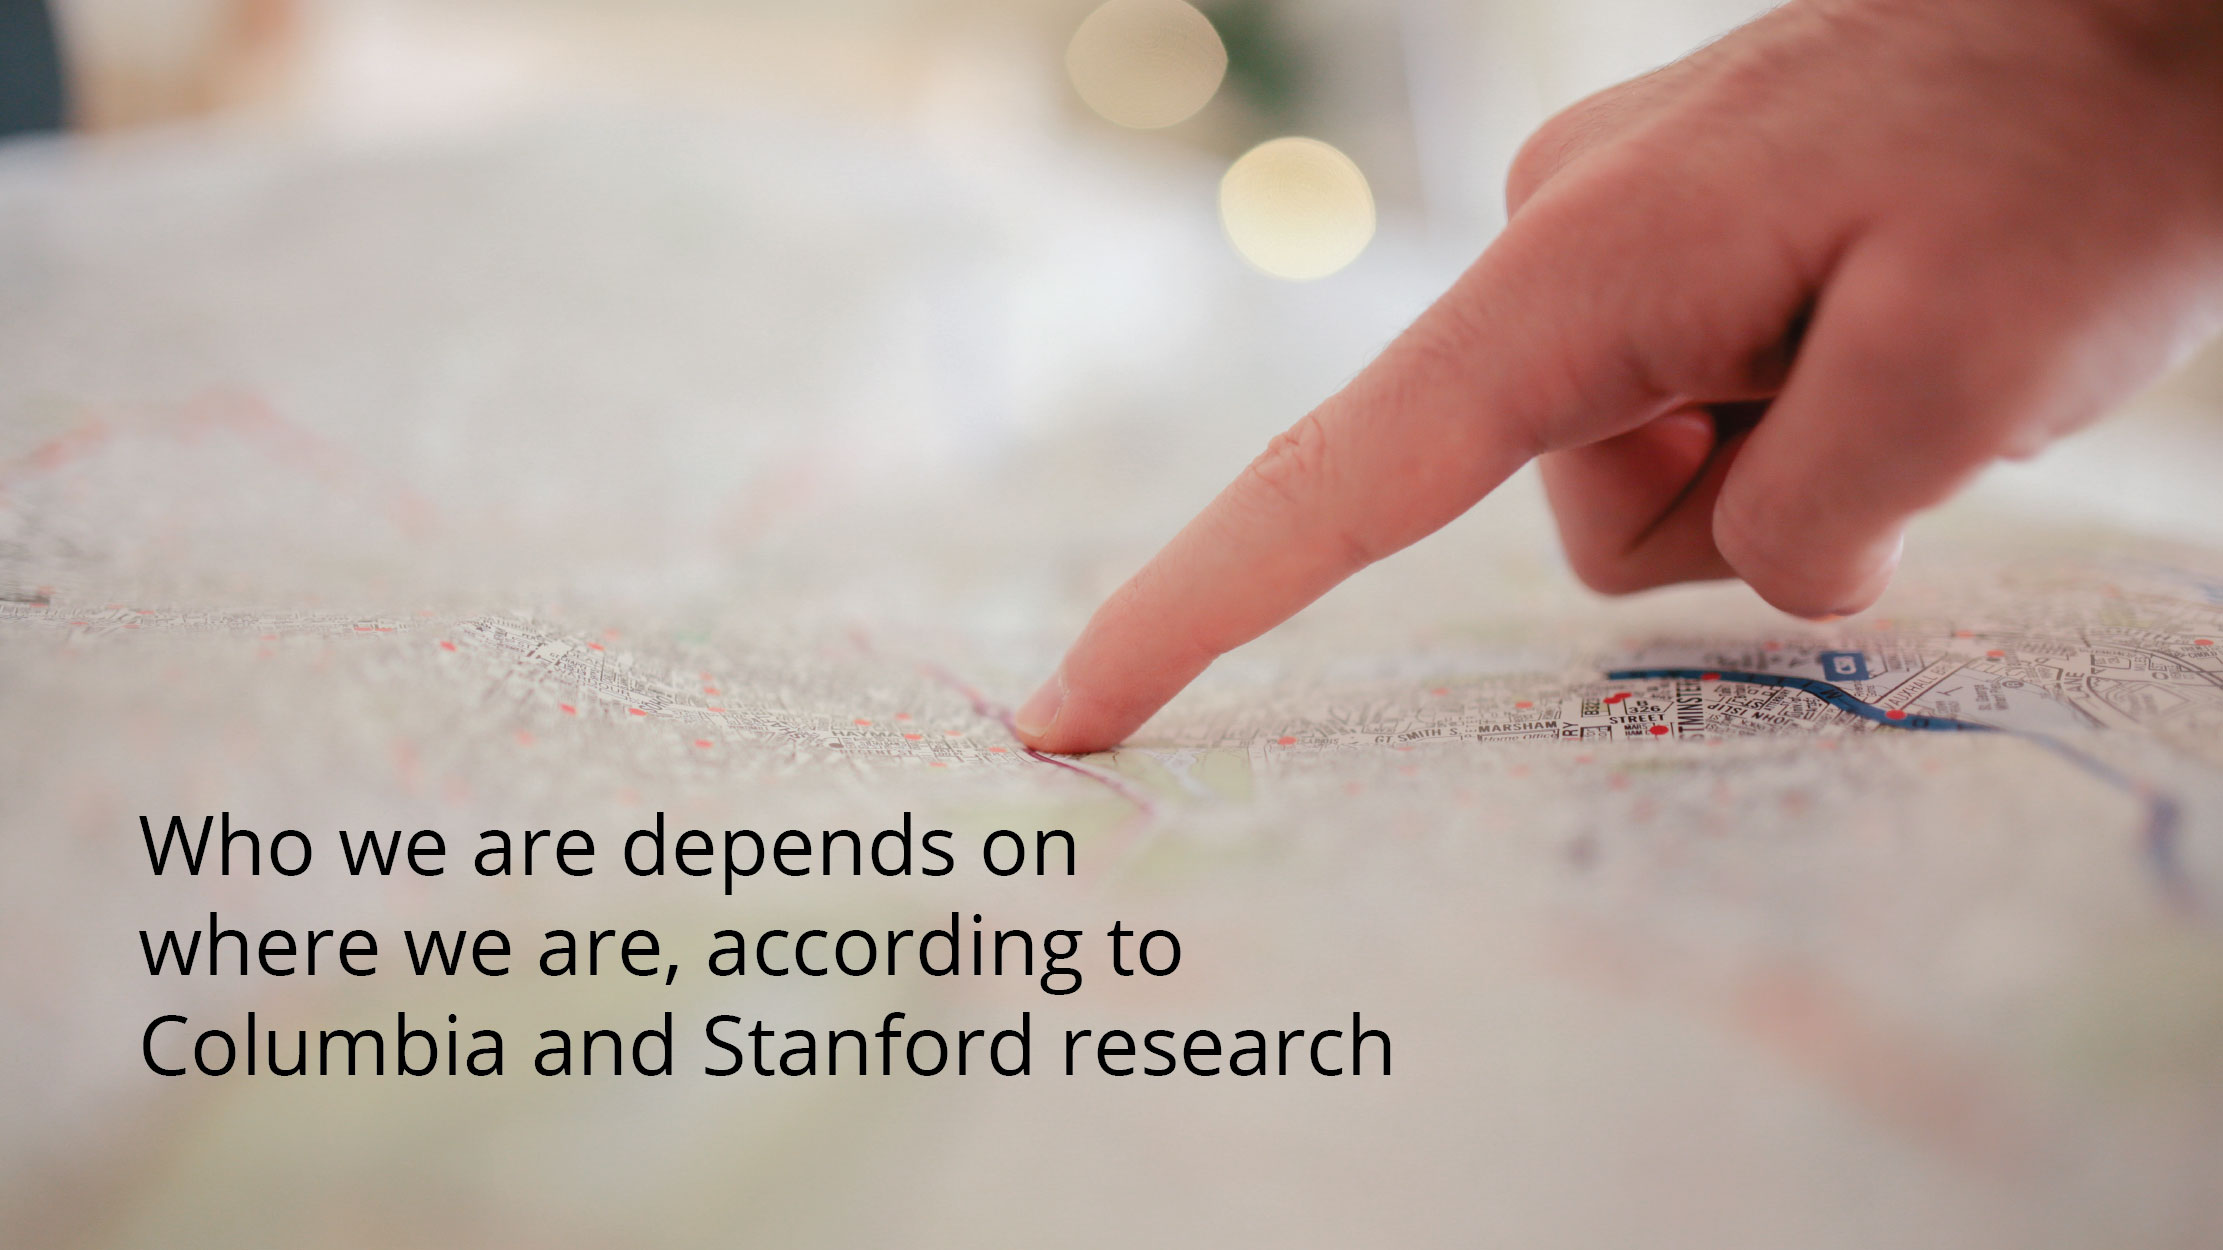 Who we are depends on where we are, according to Stanford and Columbia research